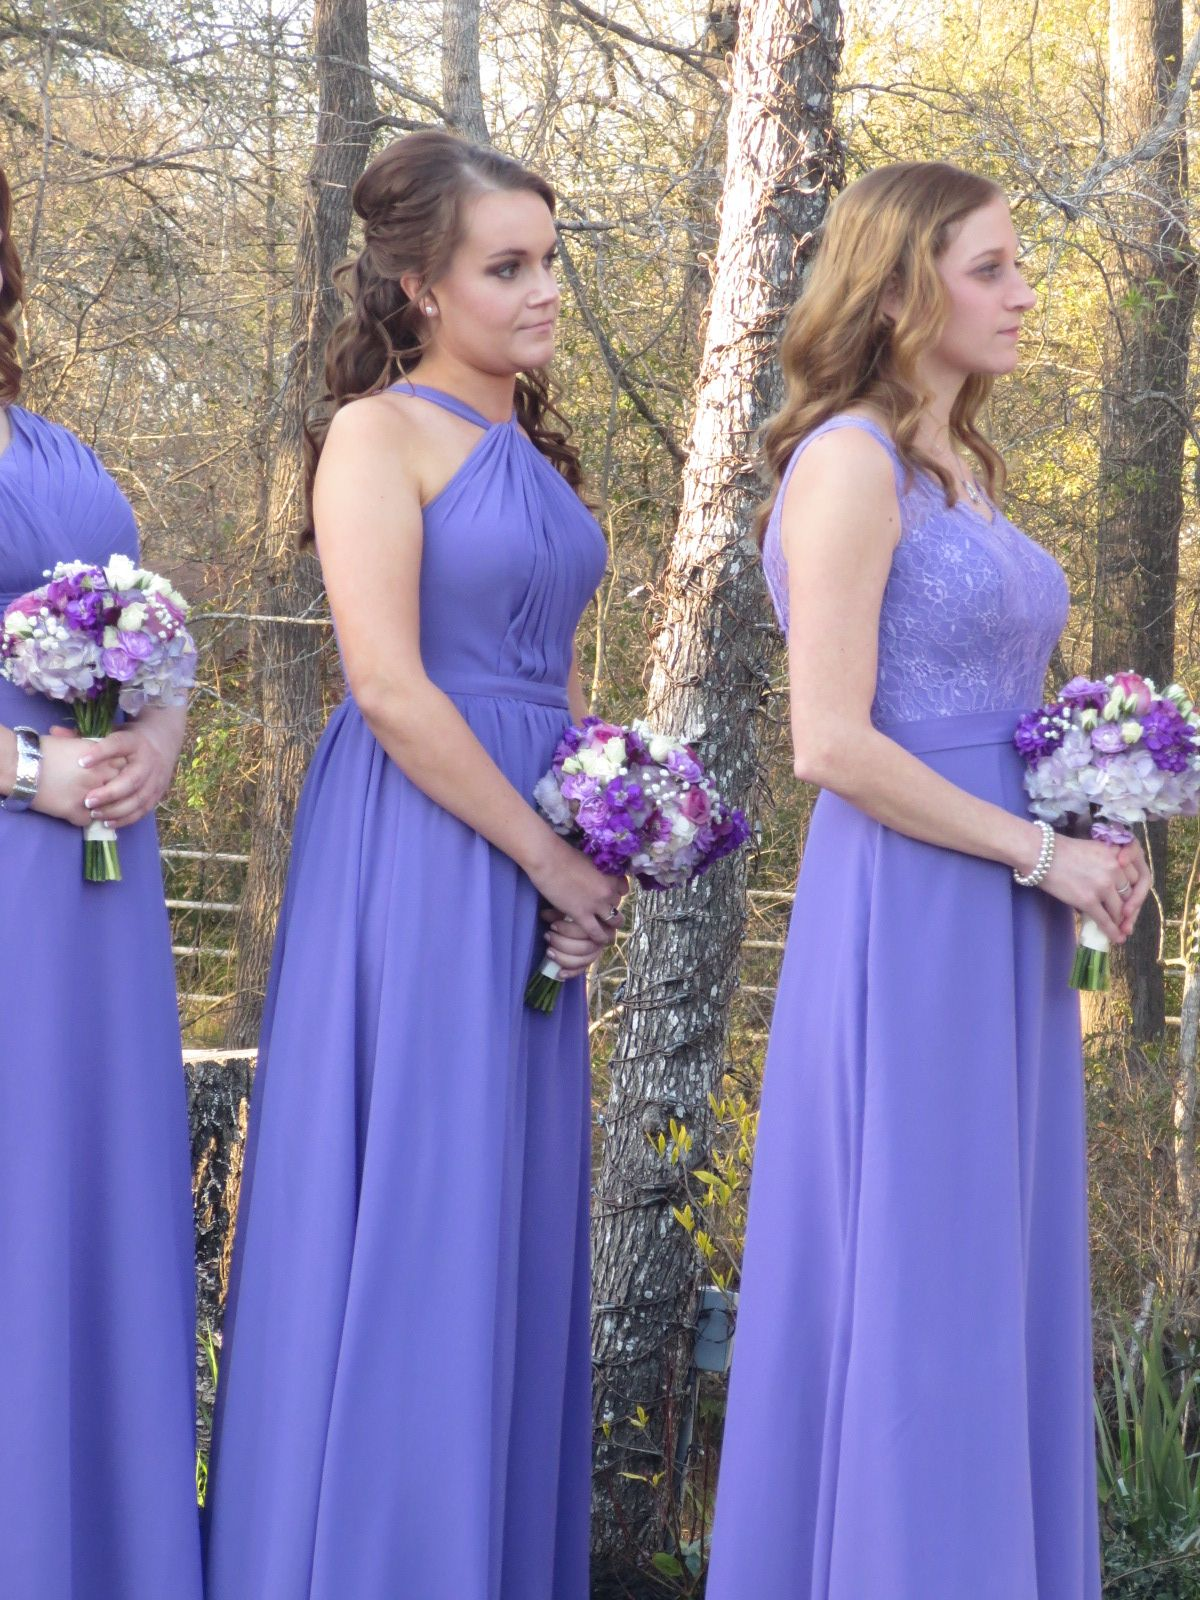 Color for bridesmaid dresses - Tahiti | Wedding Ideas | Pinterest ...